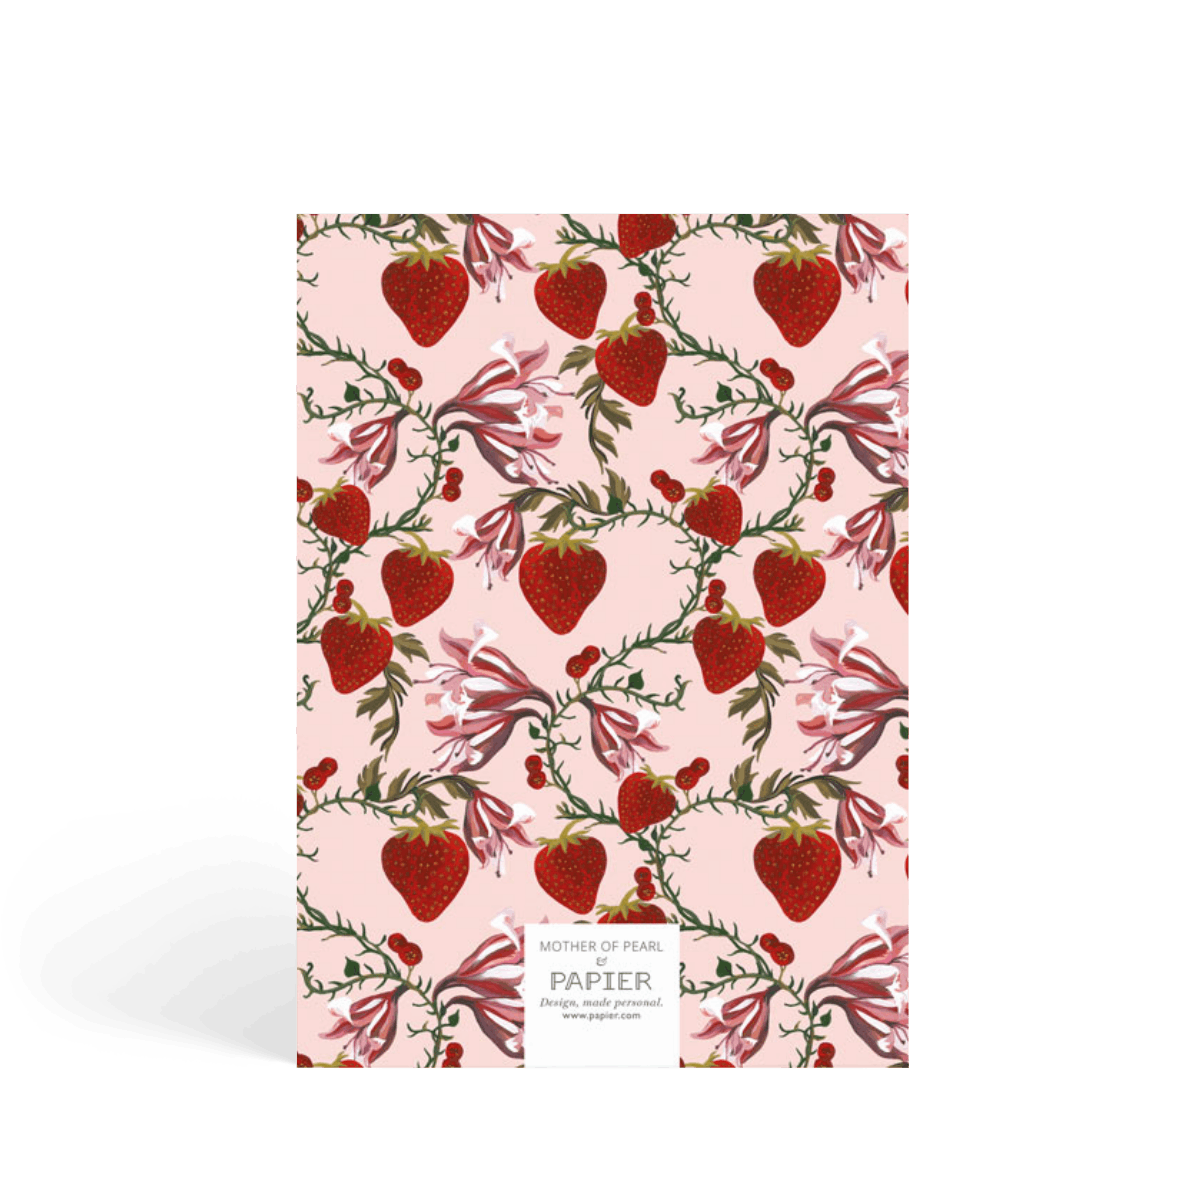 Https%3a%2f%2fwww.papier.com%2fproduct image%2f49549%2f5%2fstrawberry floral pink 12168 back 1539688430.png?ixlib=rb 1.1